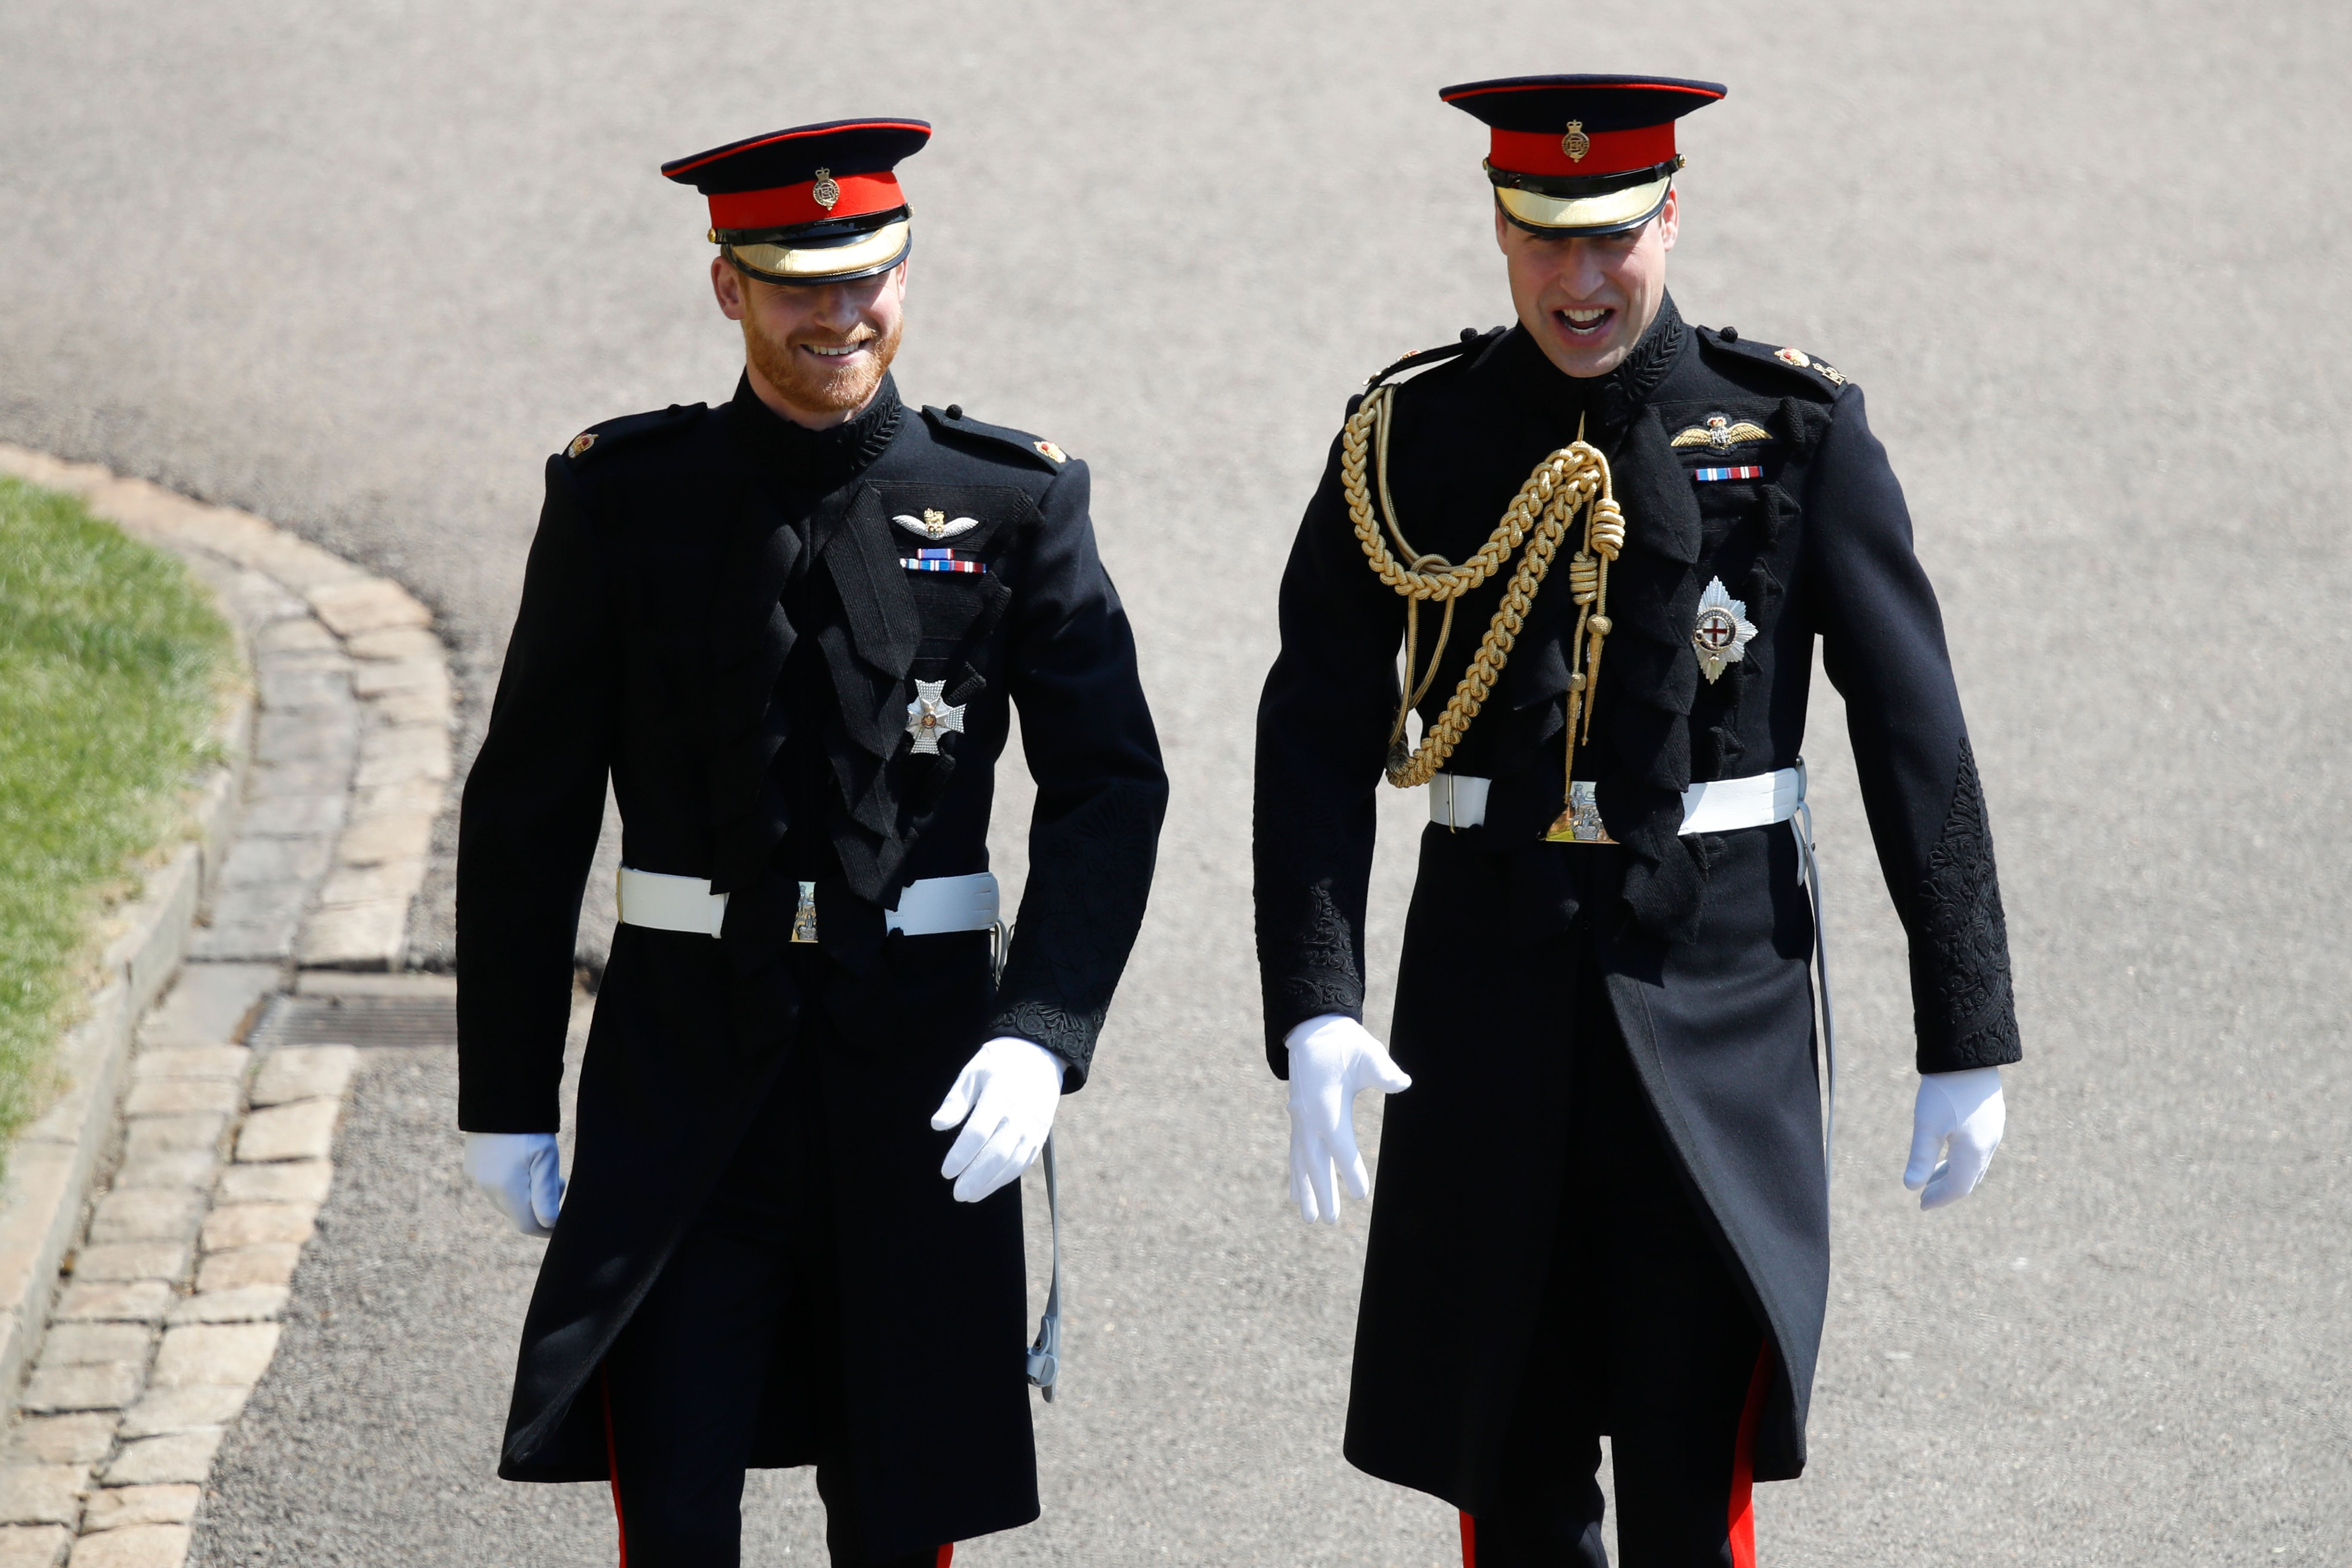 Prince Harry Wears His Blues And Royals Military Uniform To Wedding Day